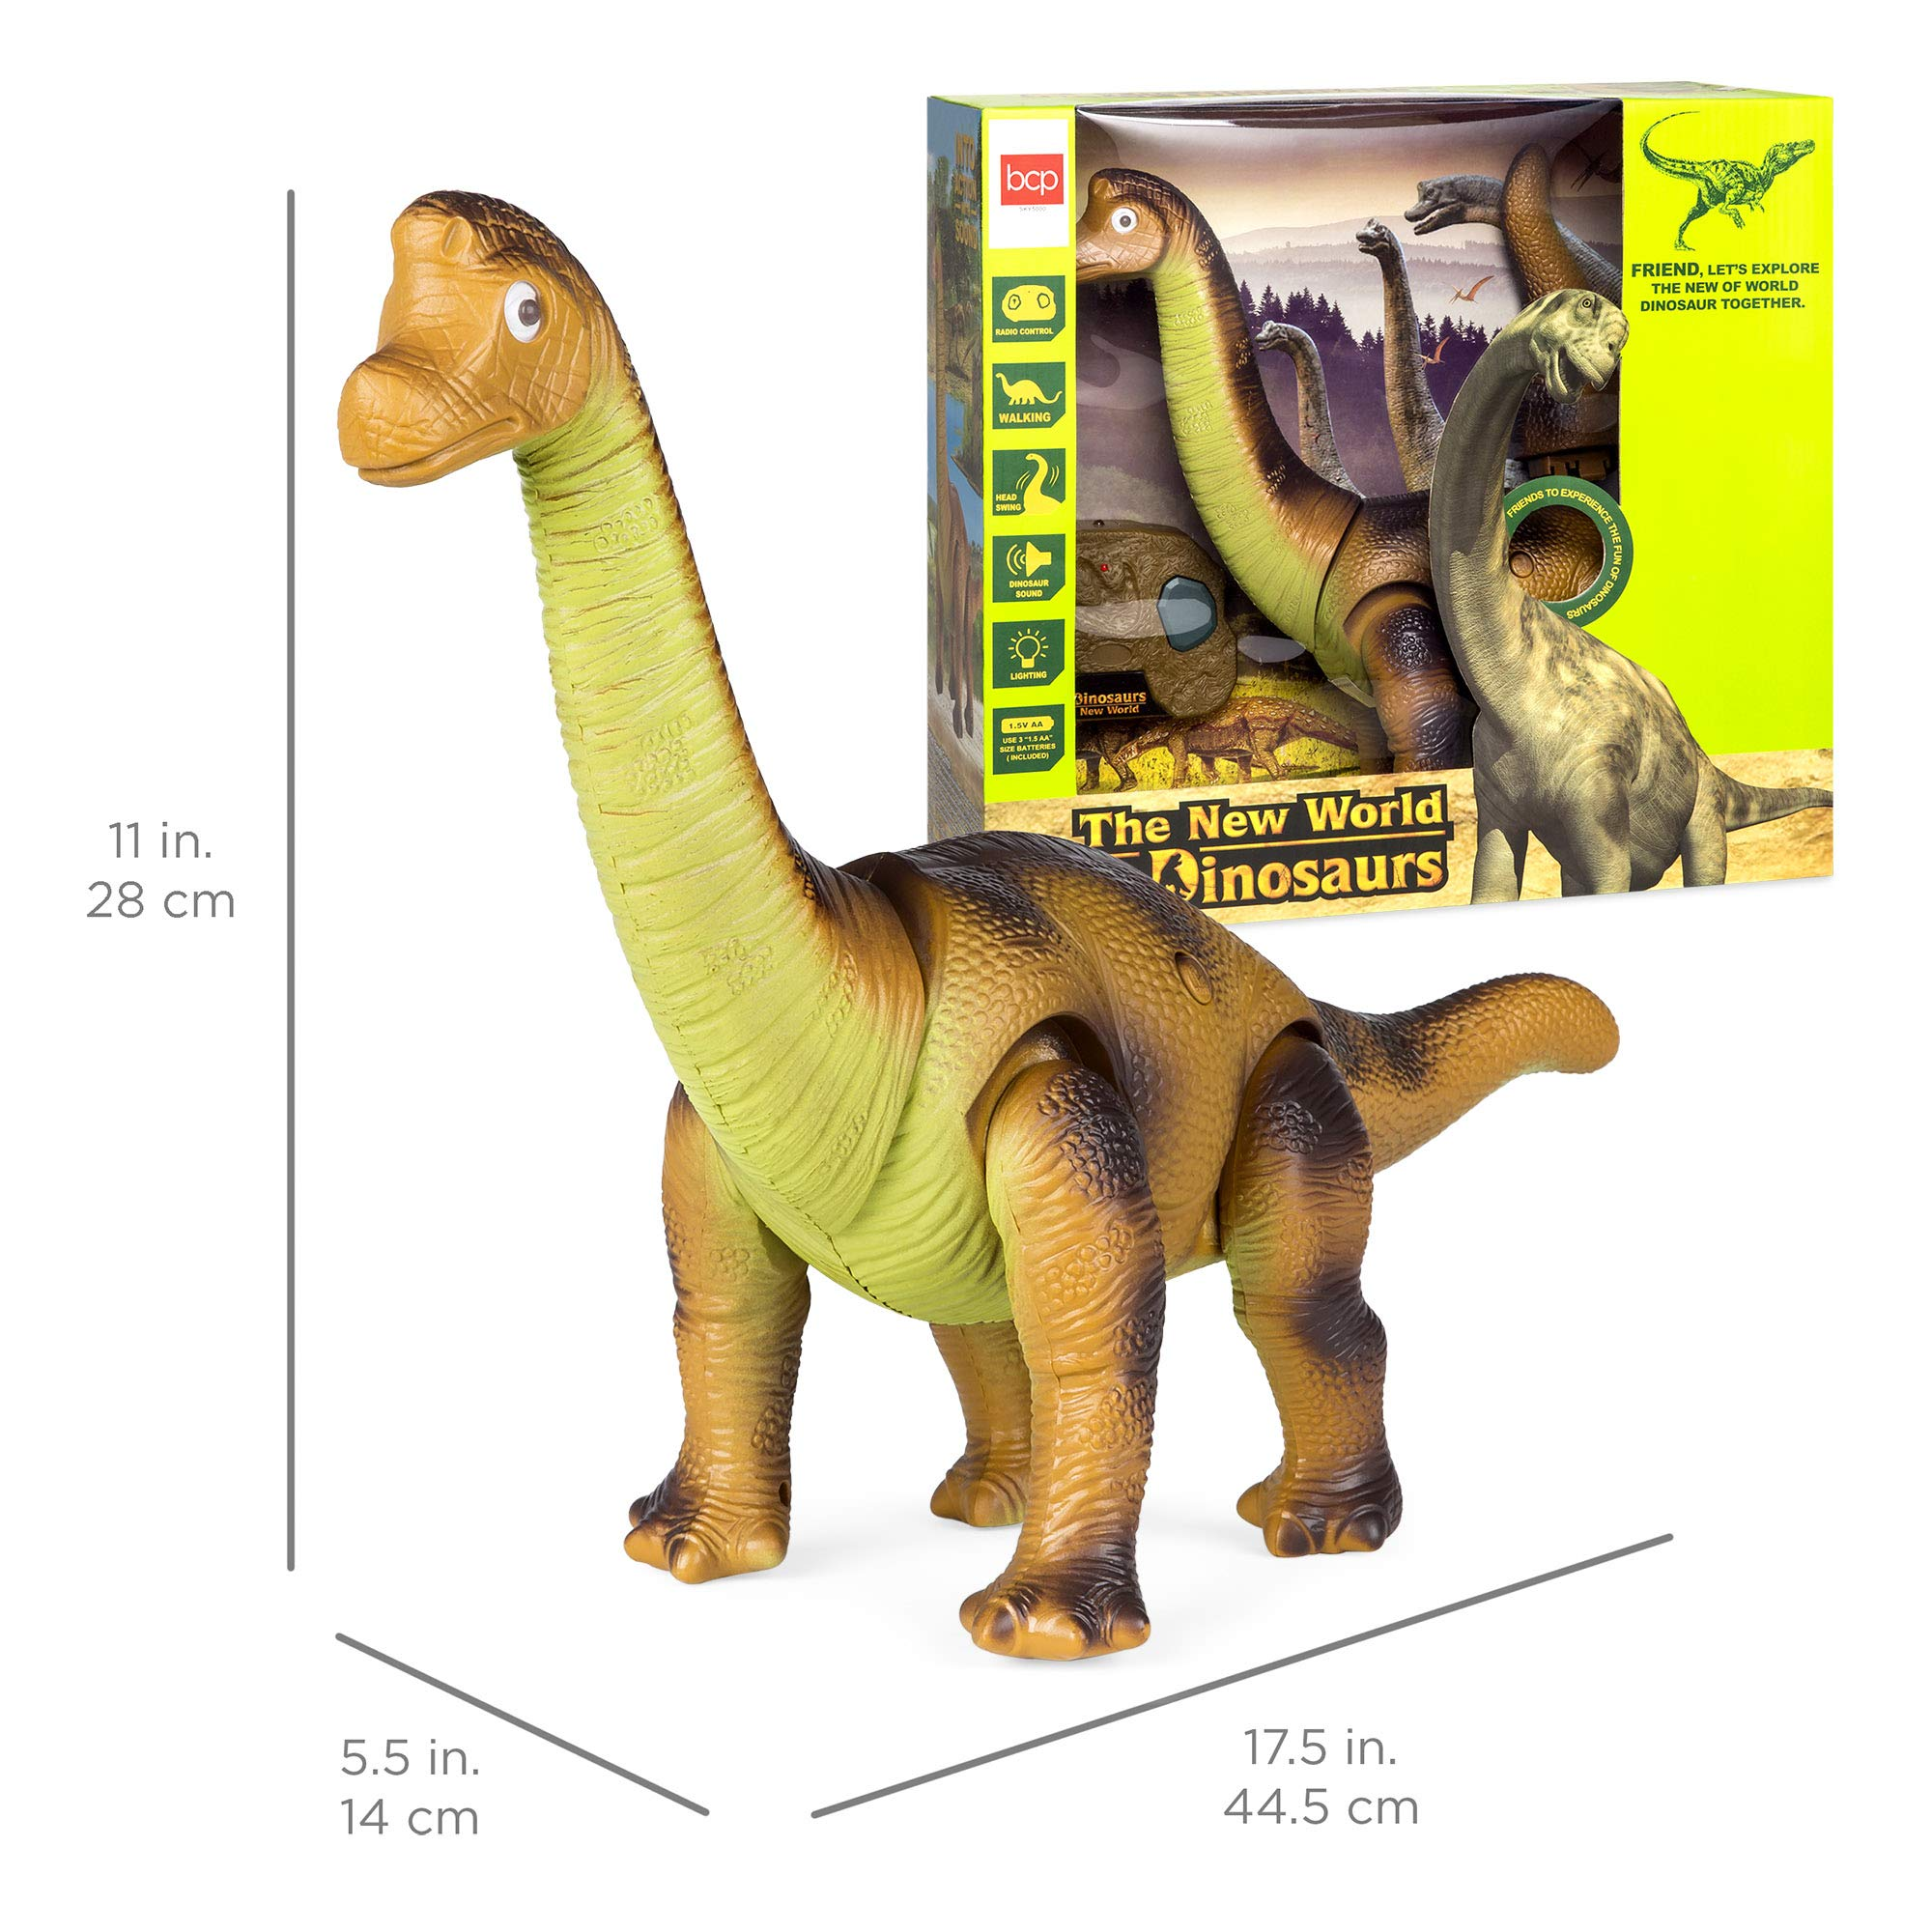 Best Choice Products 17.5in Kids RC Stomping Brachiosaurus Dinosaur Electric Animal Toy Robot w/ Light Up Eyes, Roaring Sounds, Swinging Head, Remote Control by Best Choice Products (Image #6)